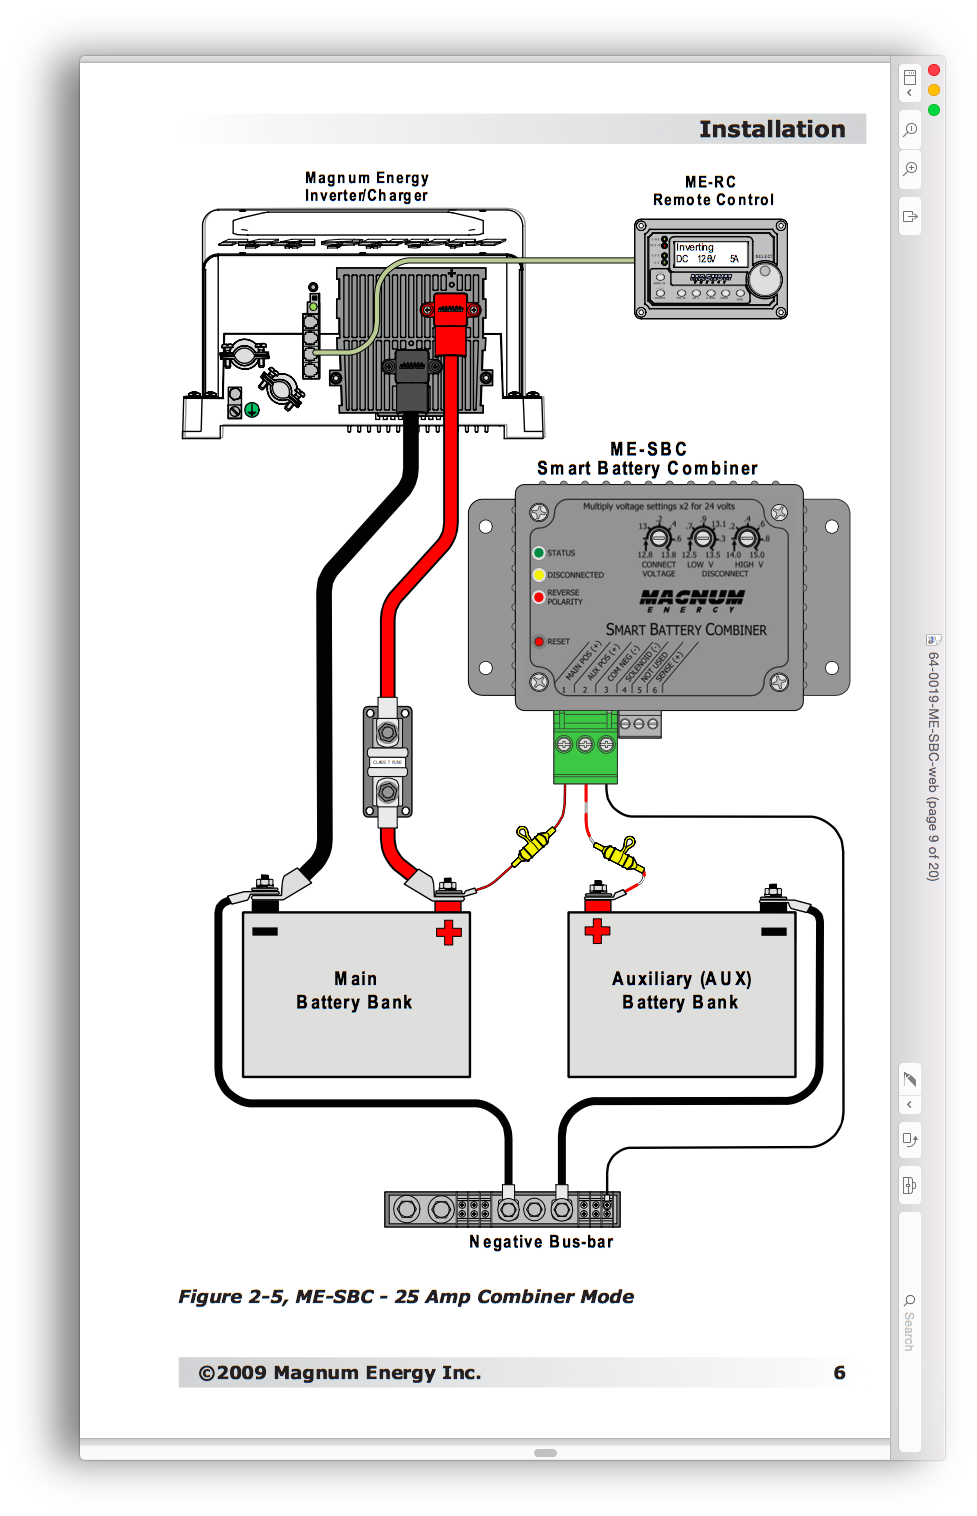 24 volt system wiring diagram product discussion magnum energy me sbc smart battery  product discussion magnum energy me sbc smart battery